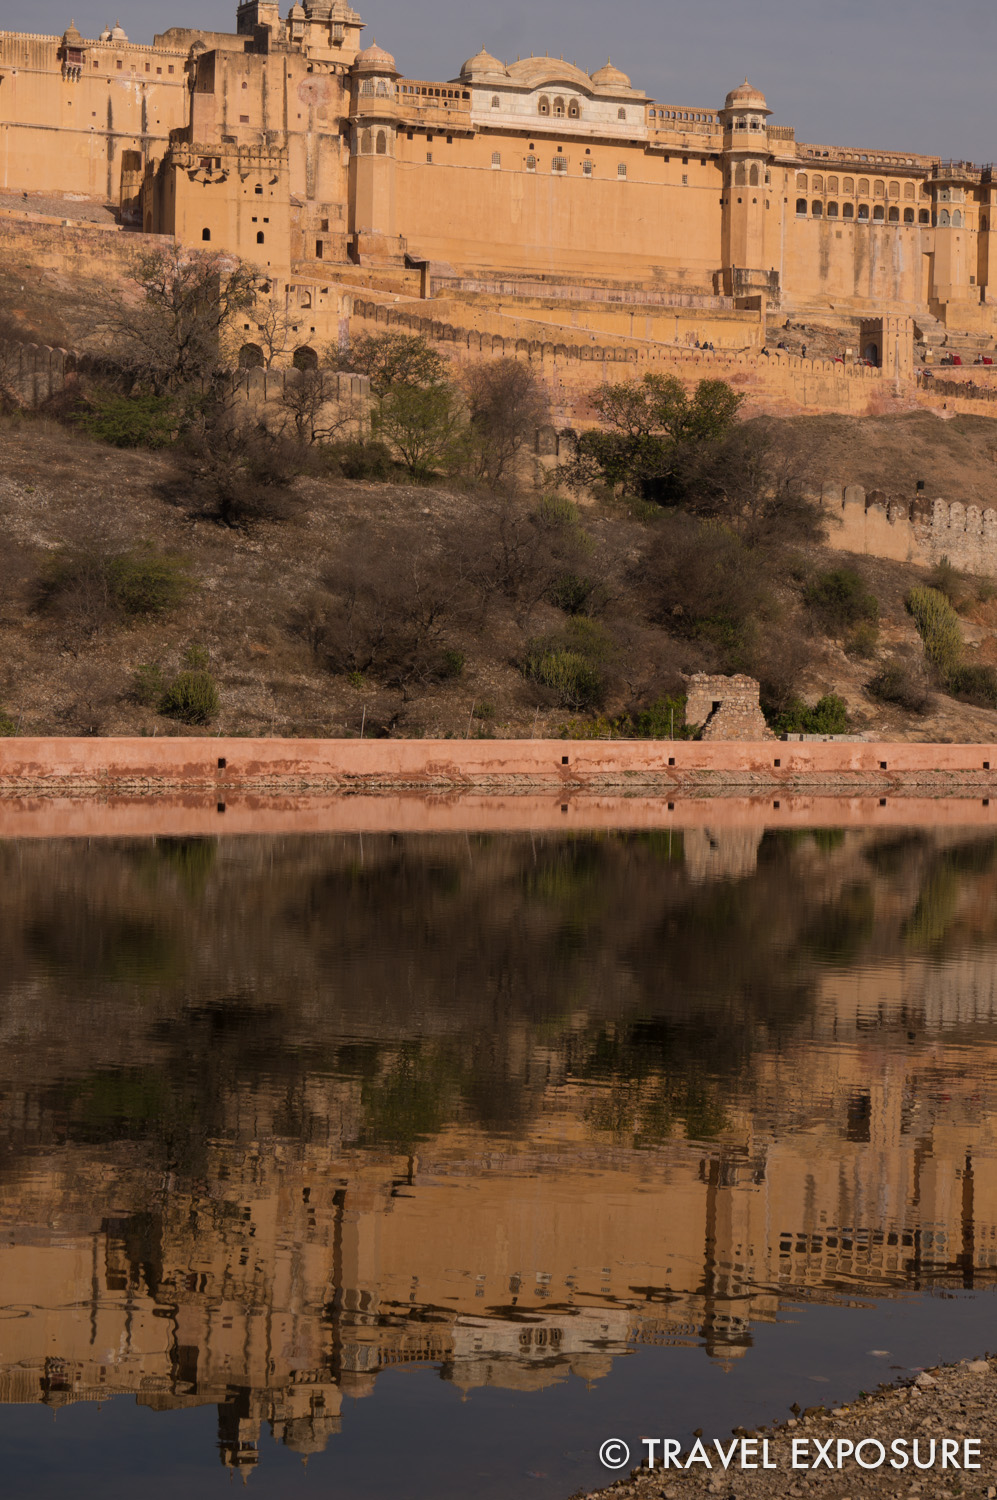 The Amber Fort/Palace in Jaipur